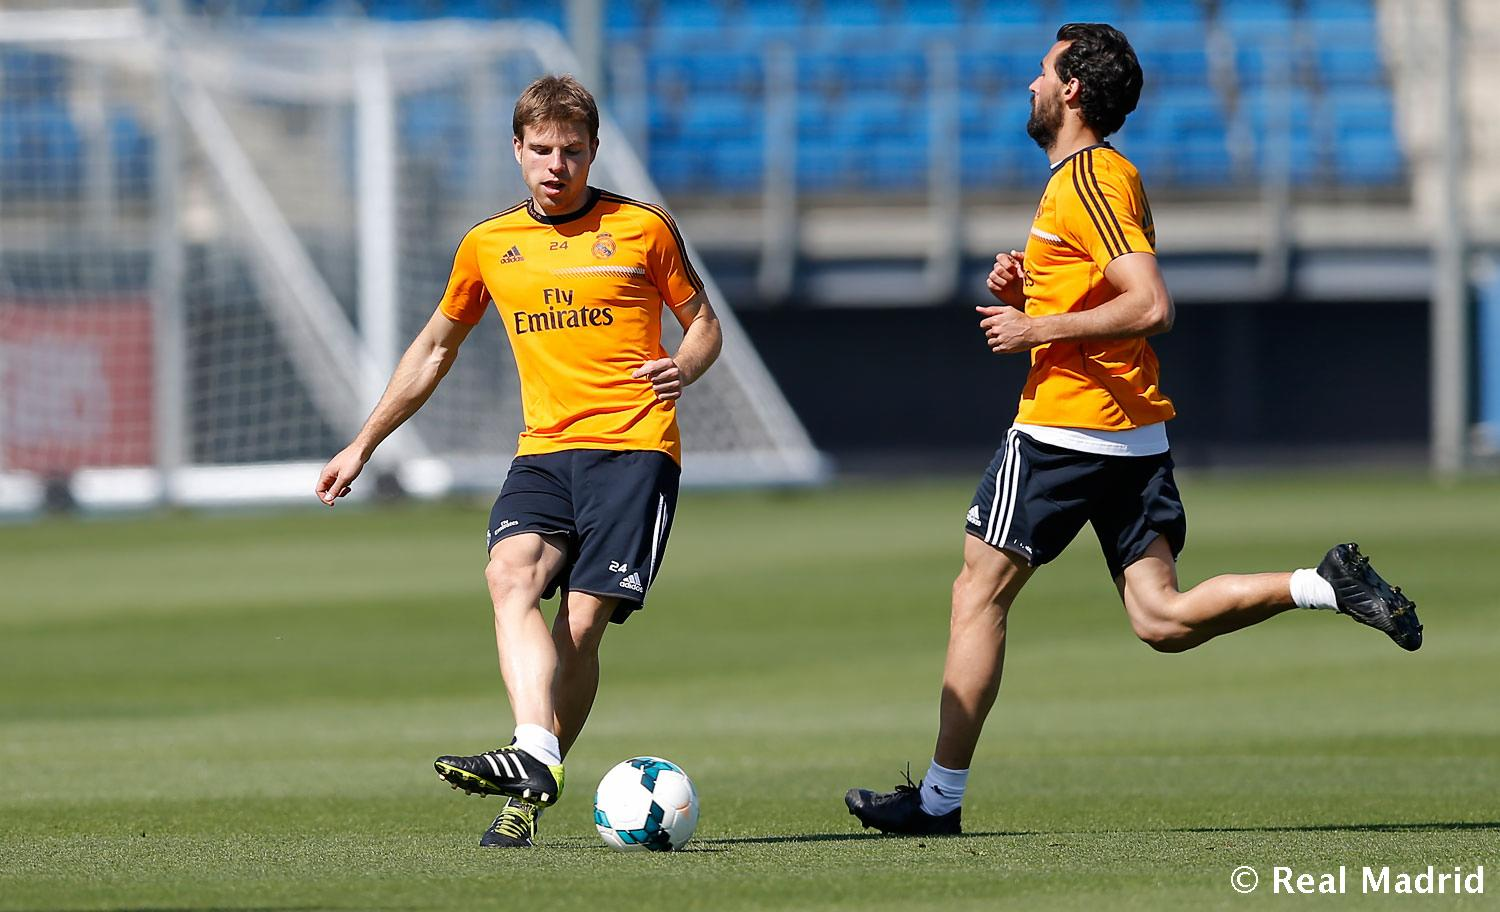 Real Madrid - Entrenamiento del Real Madrid - 05-05-2014